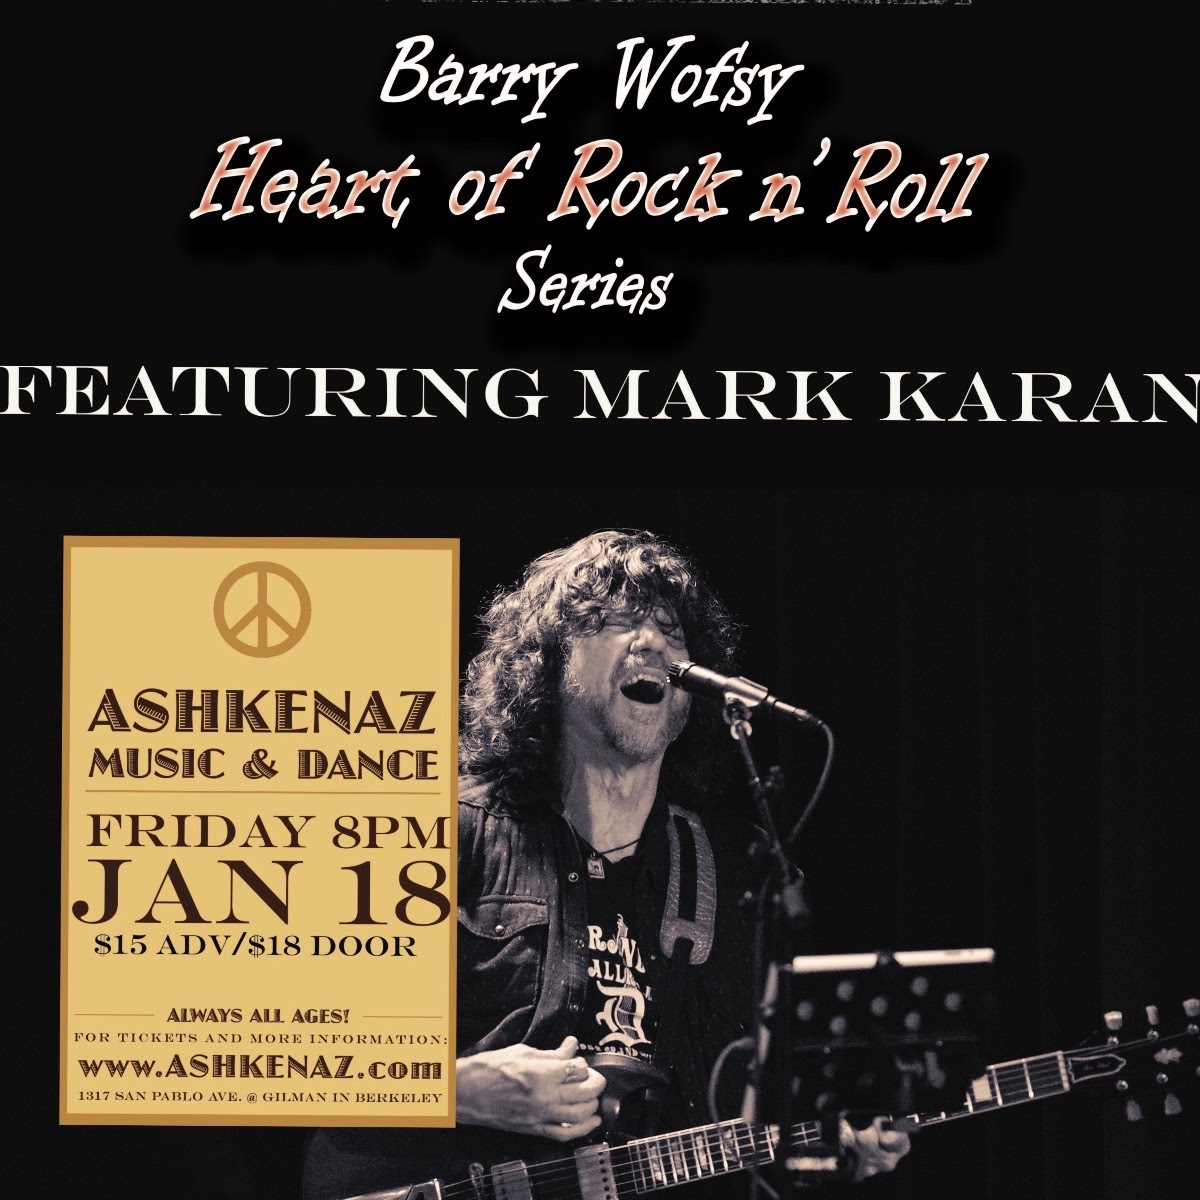 1/18 : Barry Wofsy Heart of Rock & Roll Series featuring Mark Karan @ Ashkenaz